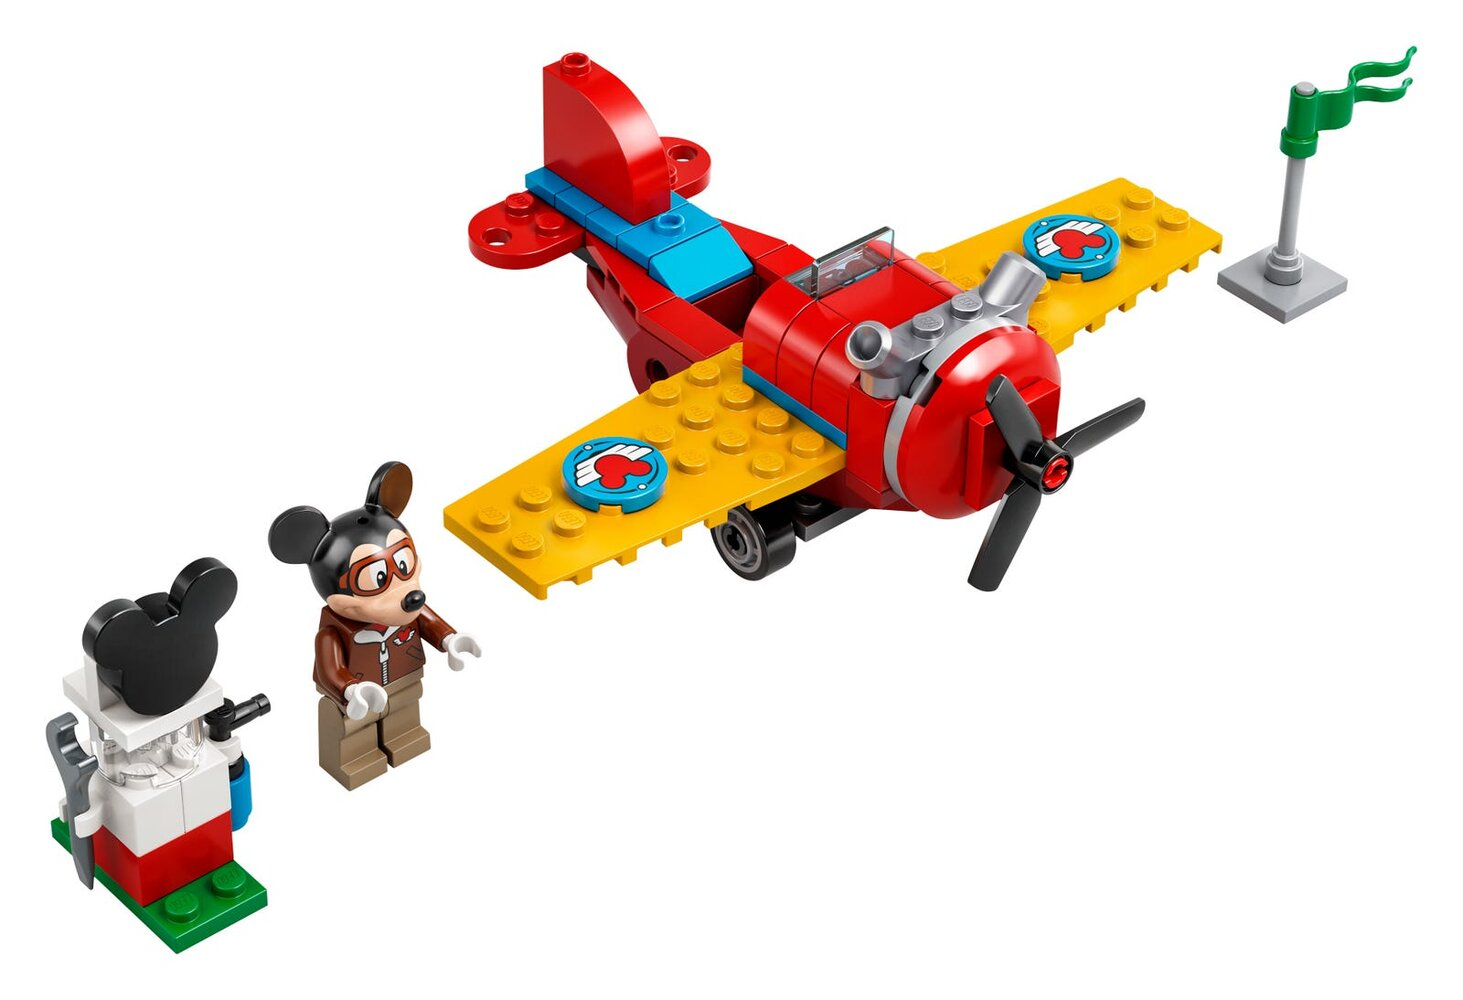 Mickey Mouse's Propeller Plane